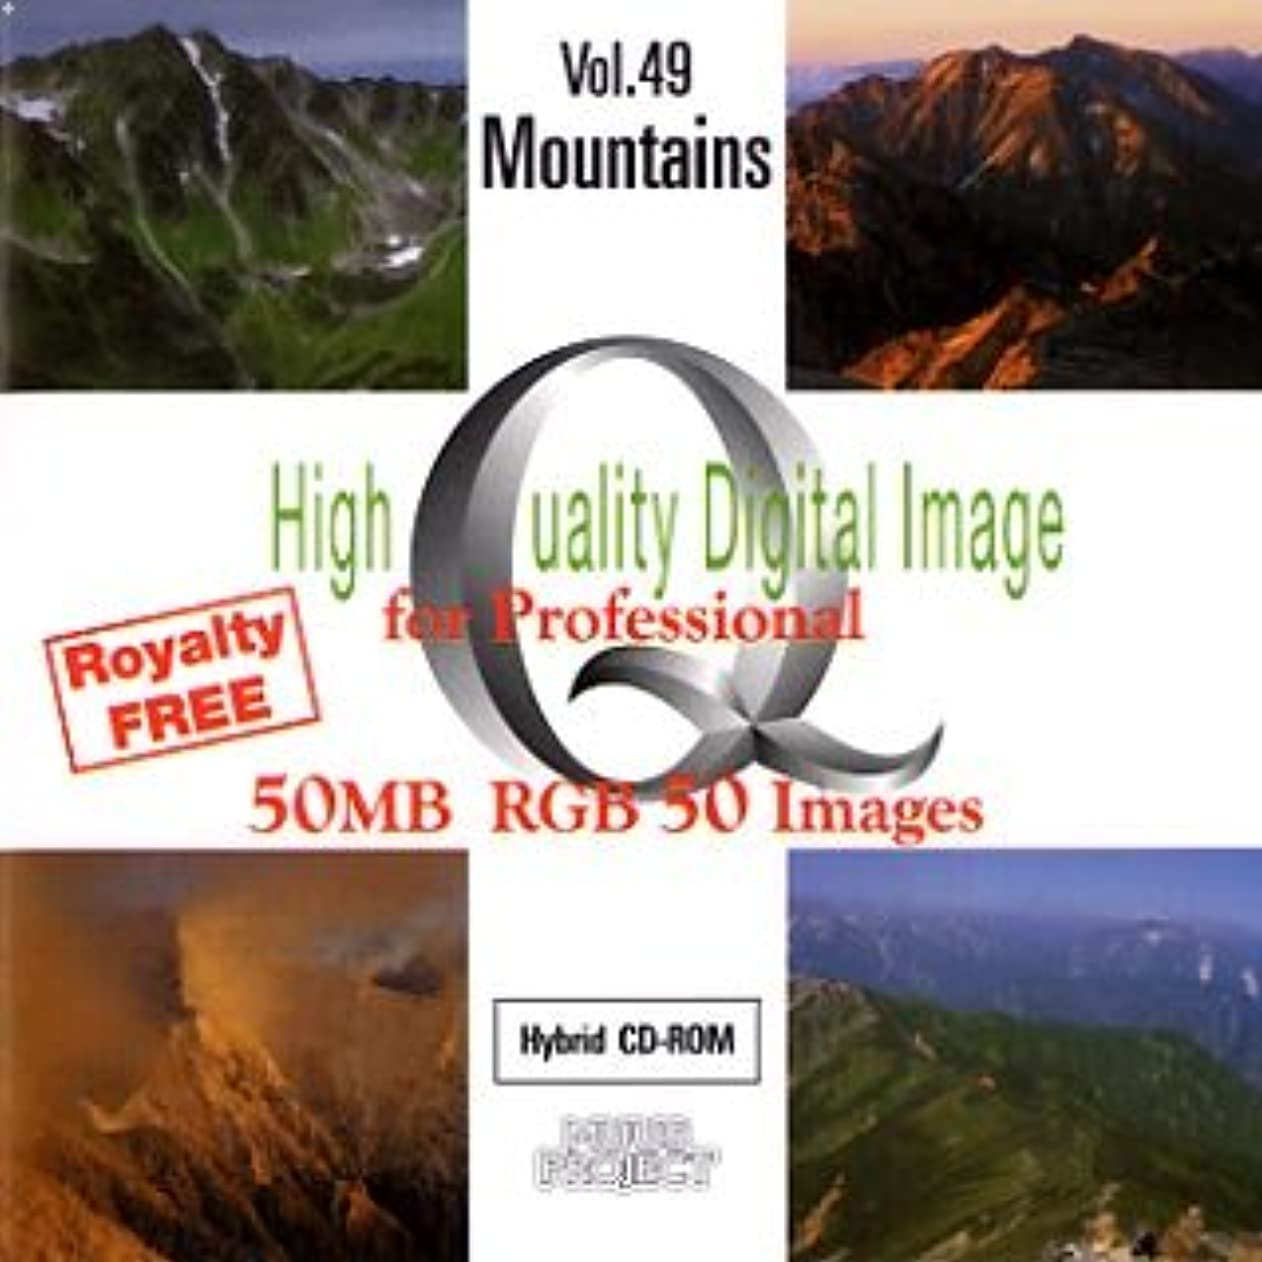 High Quality Digital Image for Professional Vol.49 Mountains